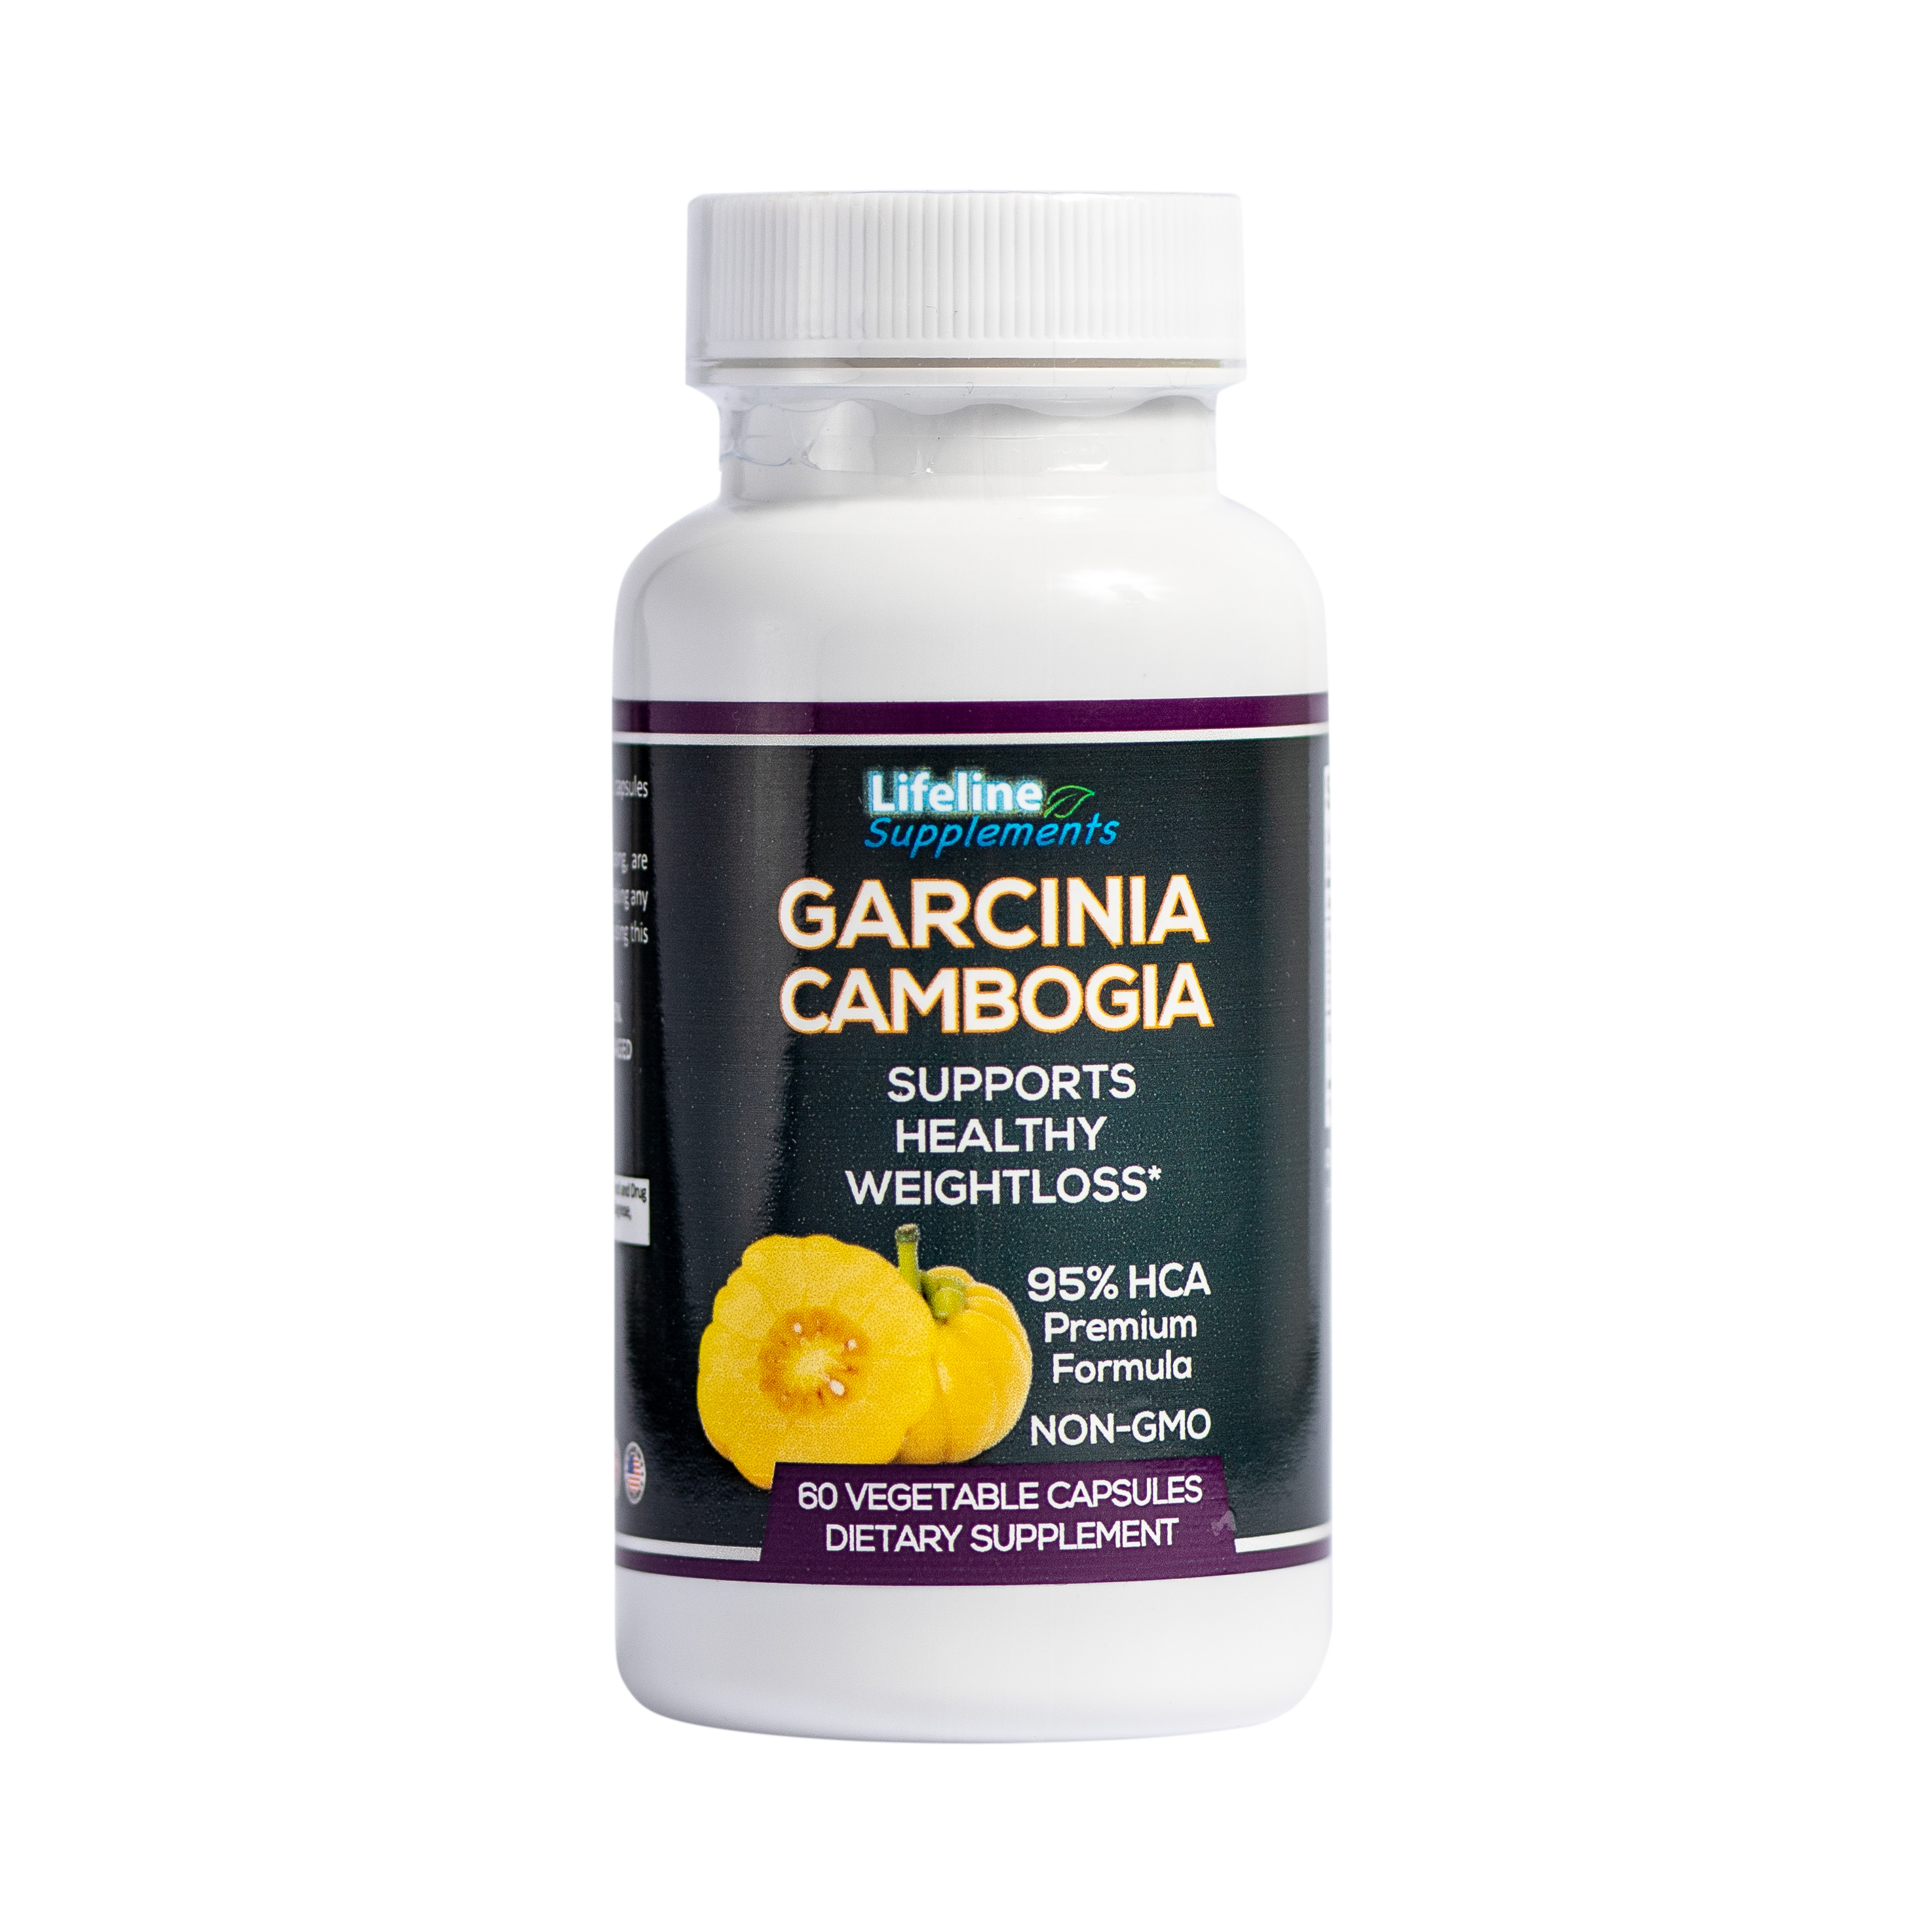 Garcinia Cambogia Appetite Control Supplement 95 Hca 60 Natural Weight Loss Supplement Capsules On Sale